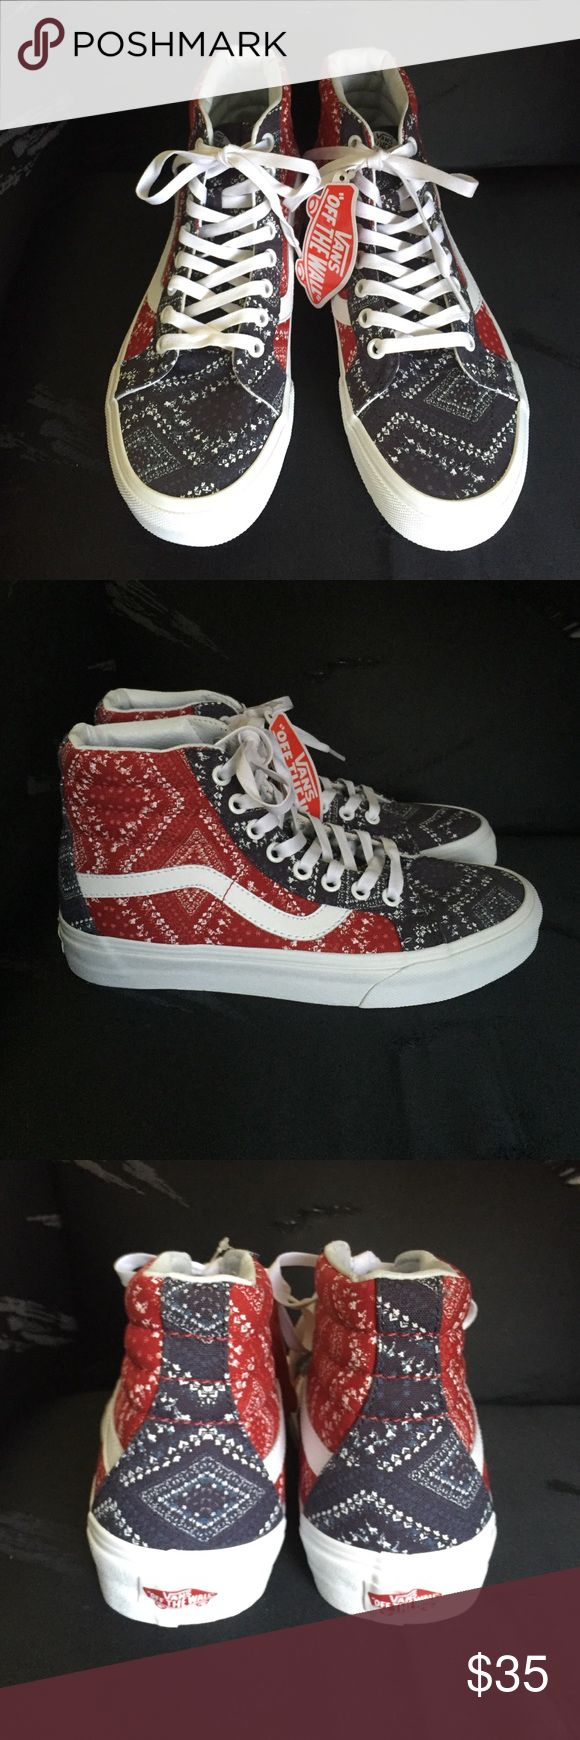 New Authentic Vans  shoes Printed canvas . High top. Can be for men or women Vans Shoes Athletic Shoes